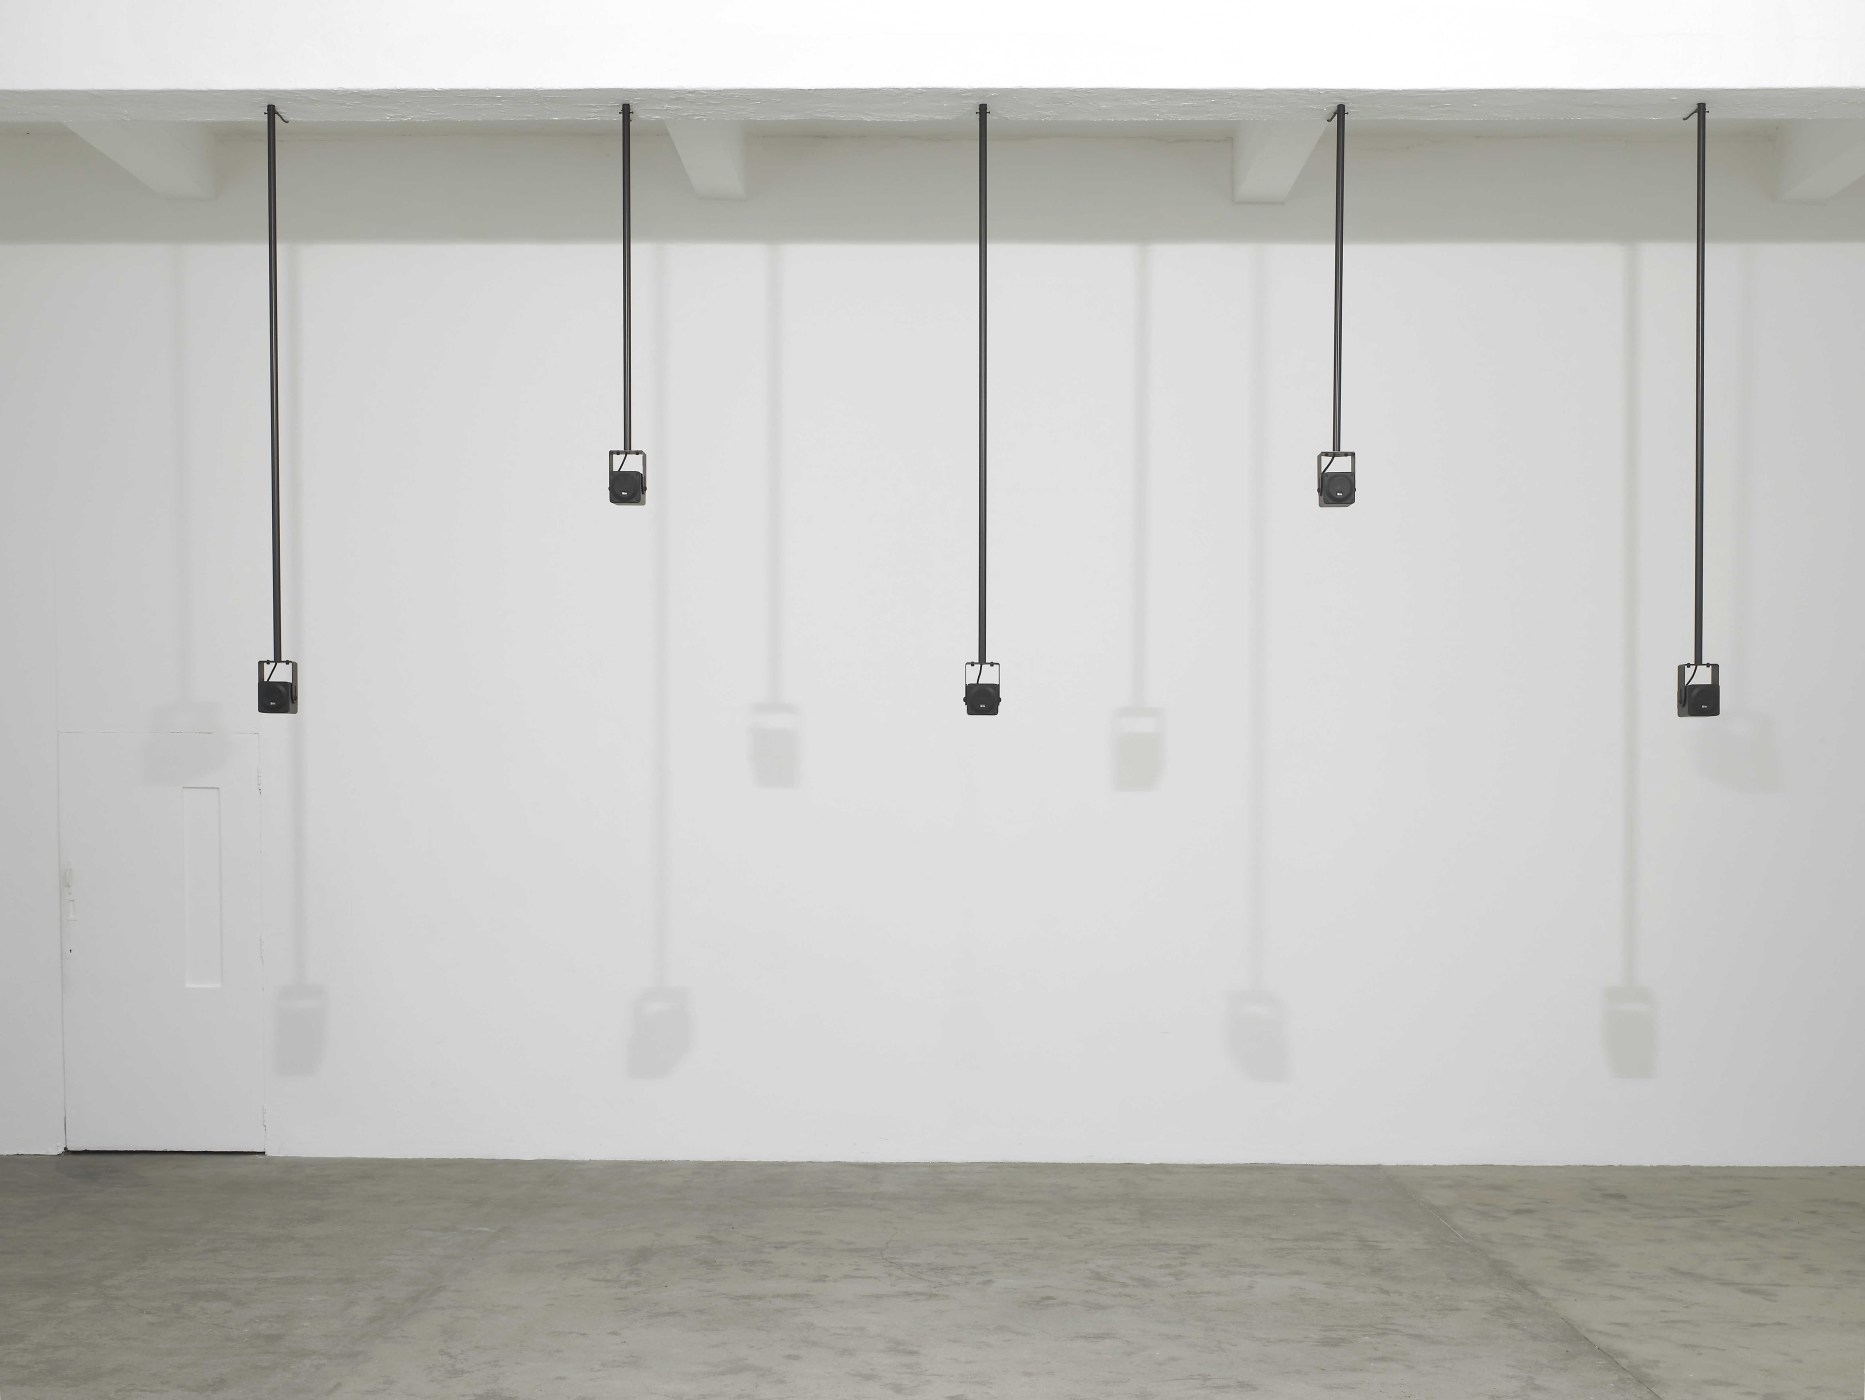 <p>Installation view, Florian Hecker, Chisenhale Gallery, London, 12 February – 28 March 2010</p>